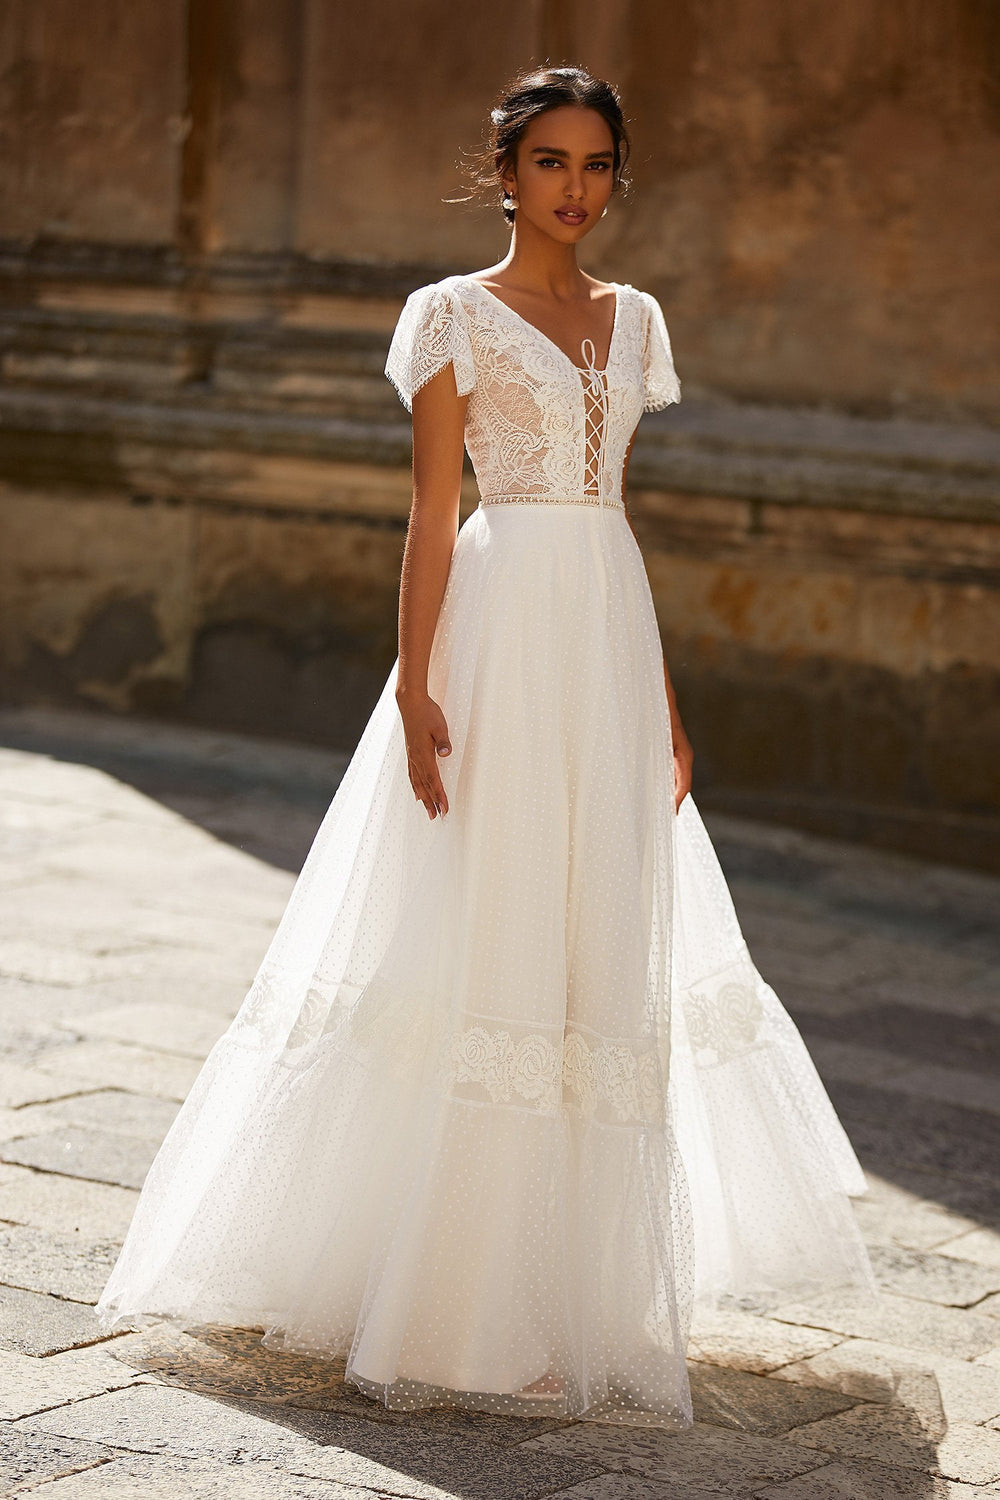 A&N Odila - White Lace Boho Bridal Short Sleeve Gown with Lace-Up Back